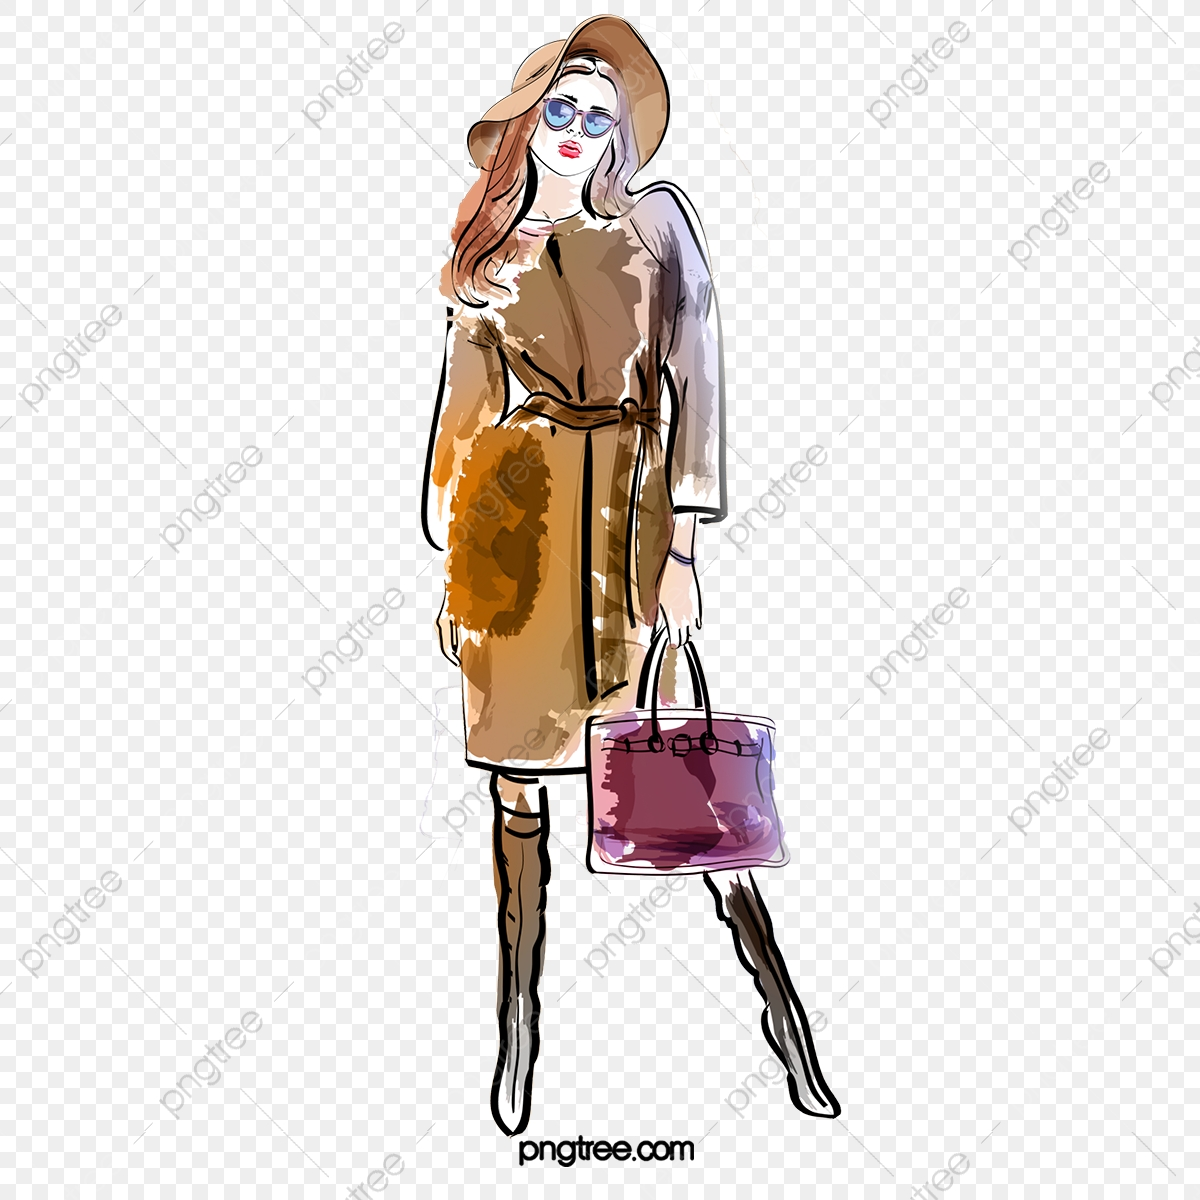 Fashion Design Fashion Girl Shopping Hand Drawn Elements Sunglasses High Heels Clothes Png Transparent Clipart Image And Psd File For Free Download